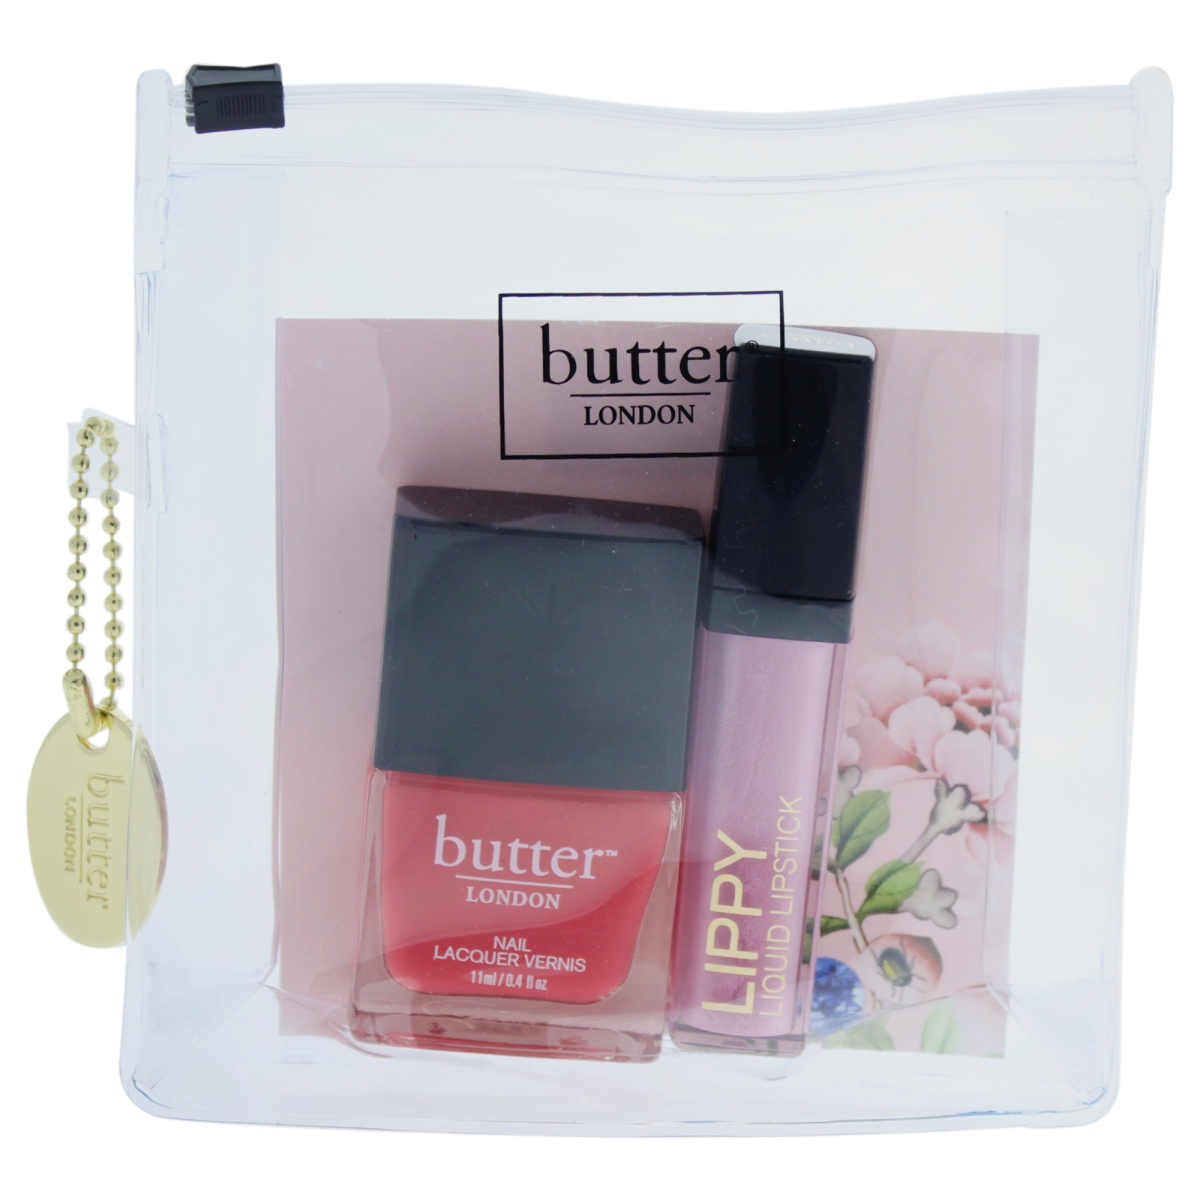 Butter London W-C-12573 0.2 oz Lippy Liquid Lipstick Tickled Pink 0.4 oz Nail Lacquer Macbeth Pink Pops Lip & Tips Collection for Women - 2 Piece